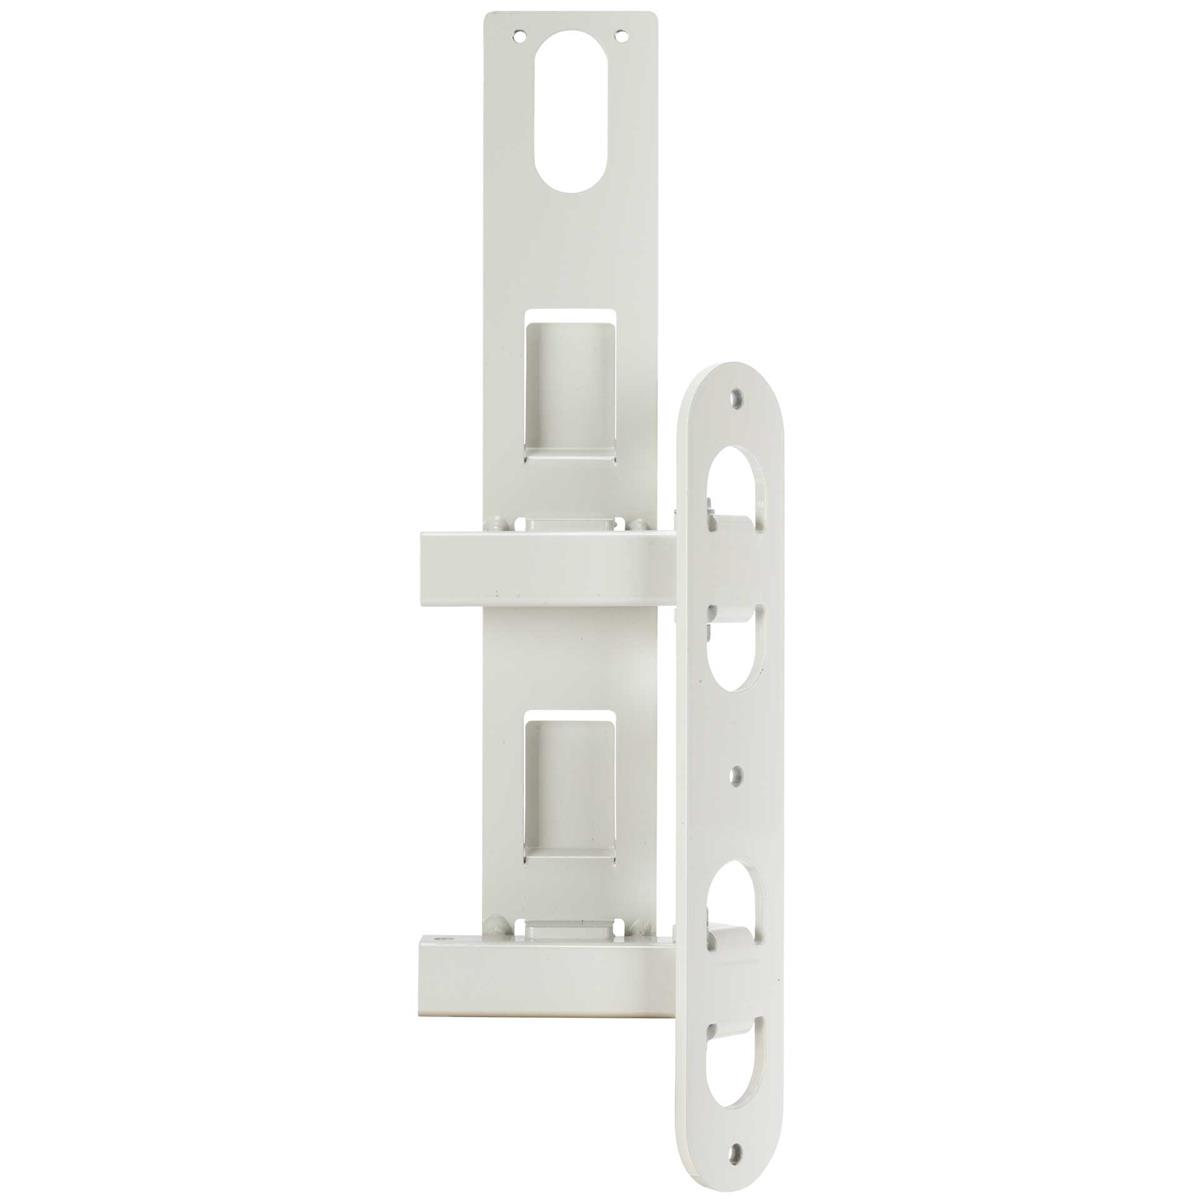 RCF SWM-BR VSA II Swivel bracket for VSA II White